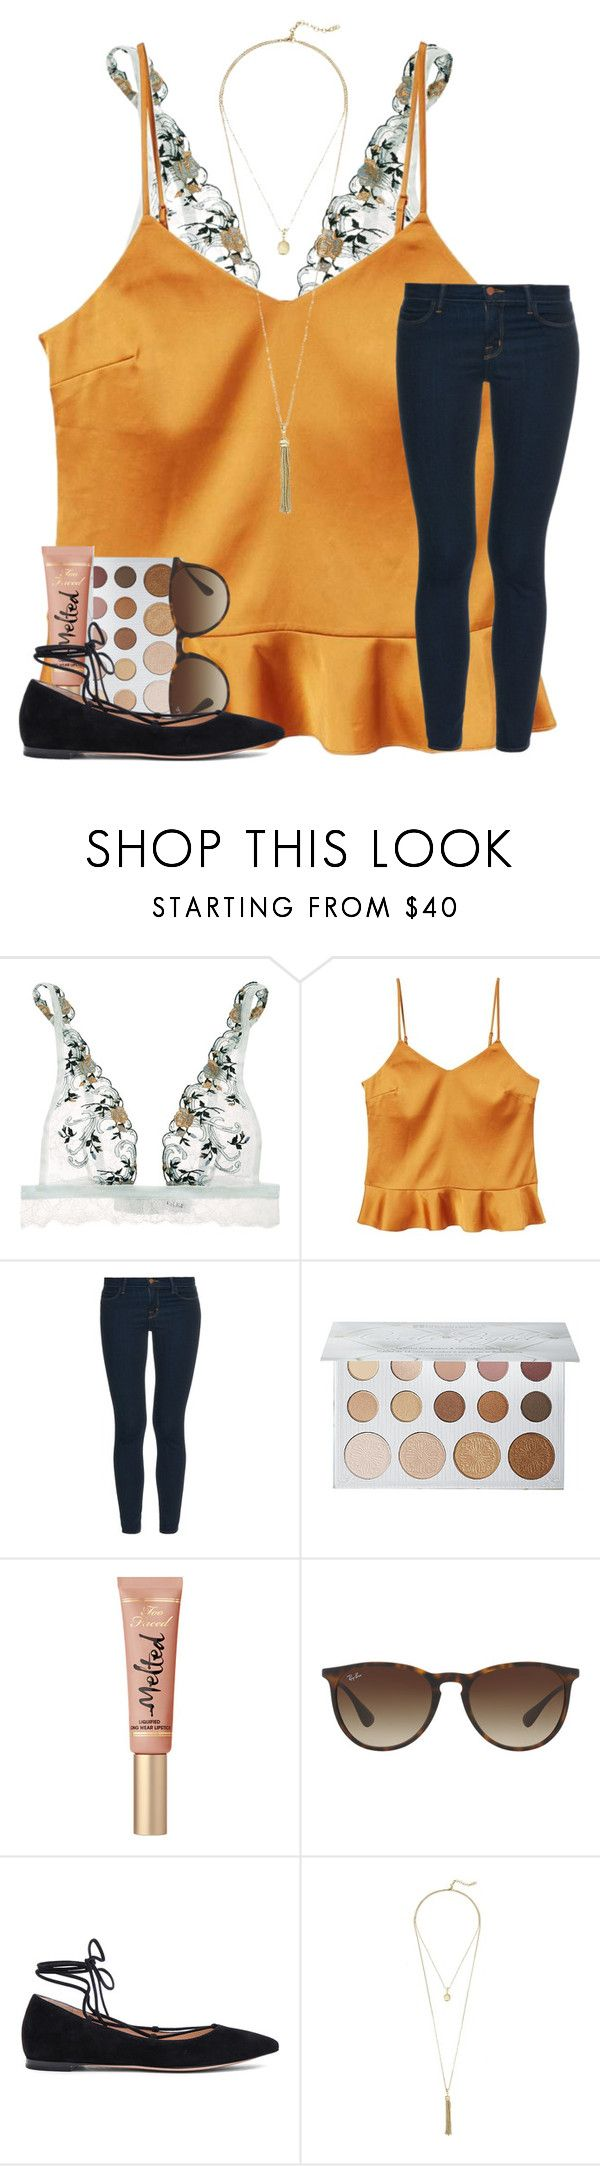 """do y'all watch college football?"" by mallorykennerly ❤ liked on Polyvore featuring La Perla, MANGO, J Brand, ULTA, Ray-Ban, Gianvito Rossi and Cole Haan"